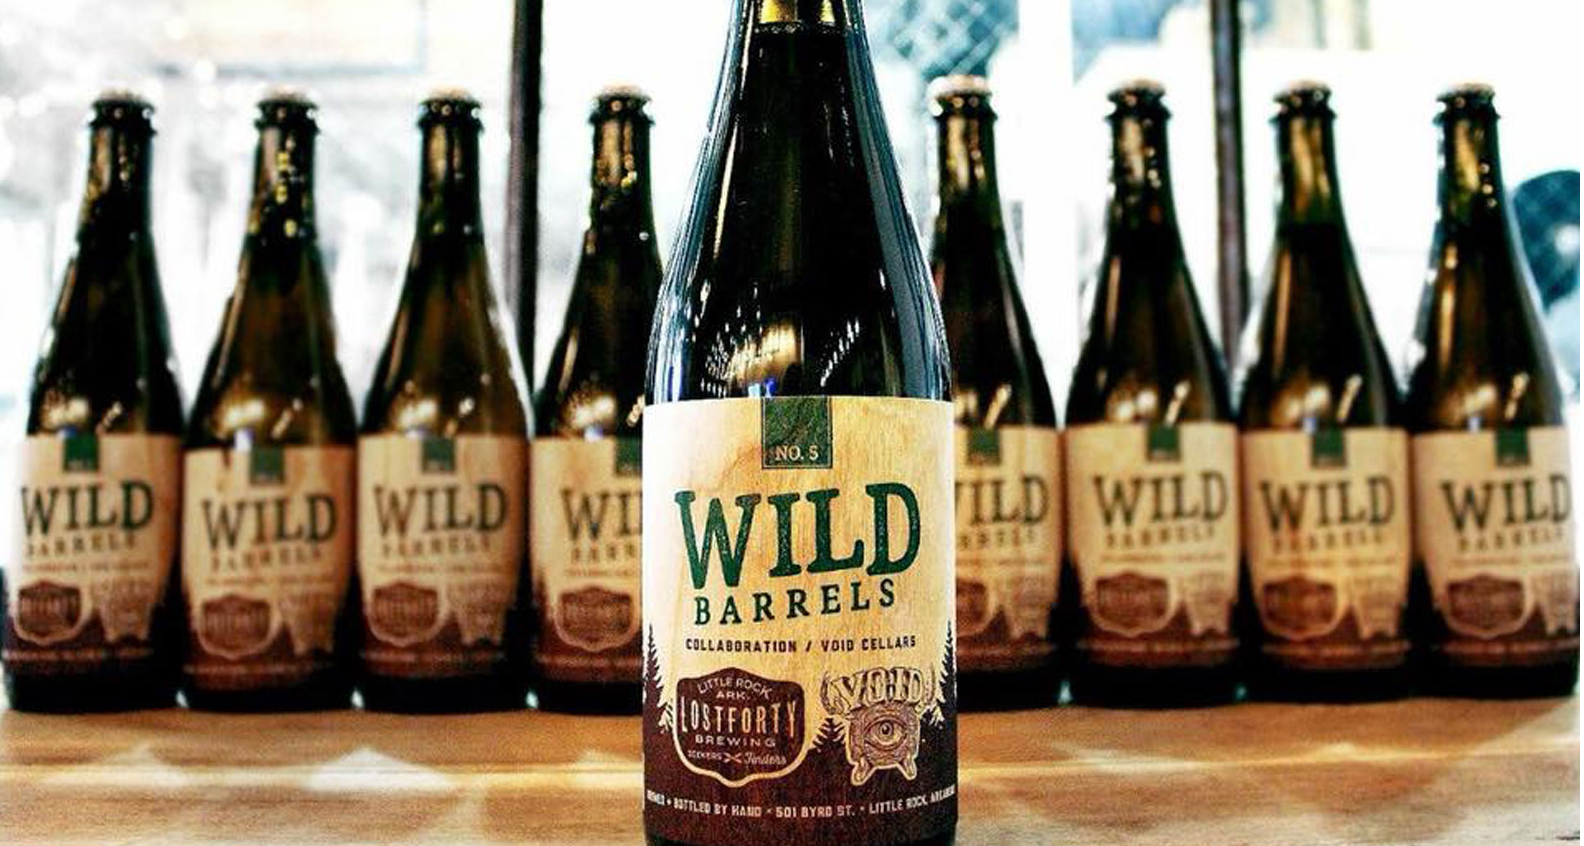 Lost Forty Wild Barrel beer